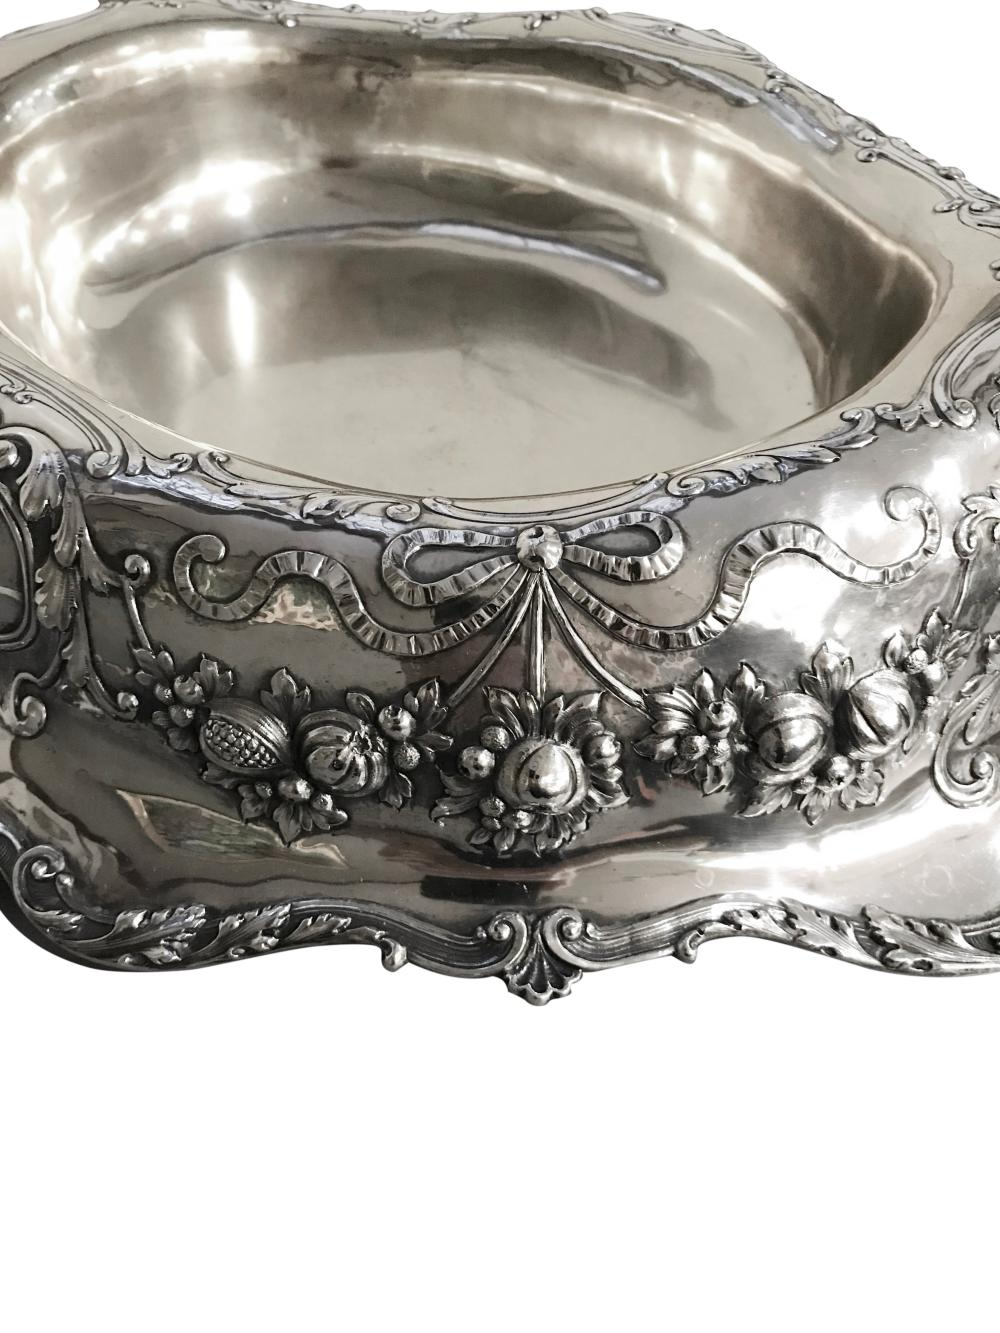 GORHAM Silver Oval Footed Center Bowl, ca. 1875